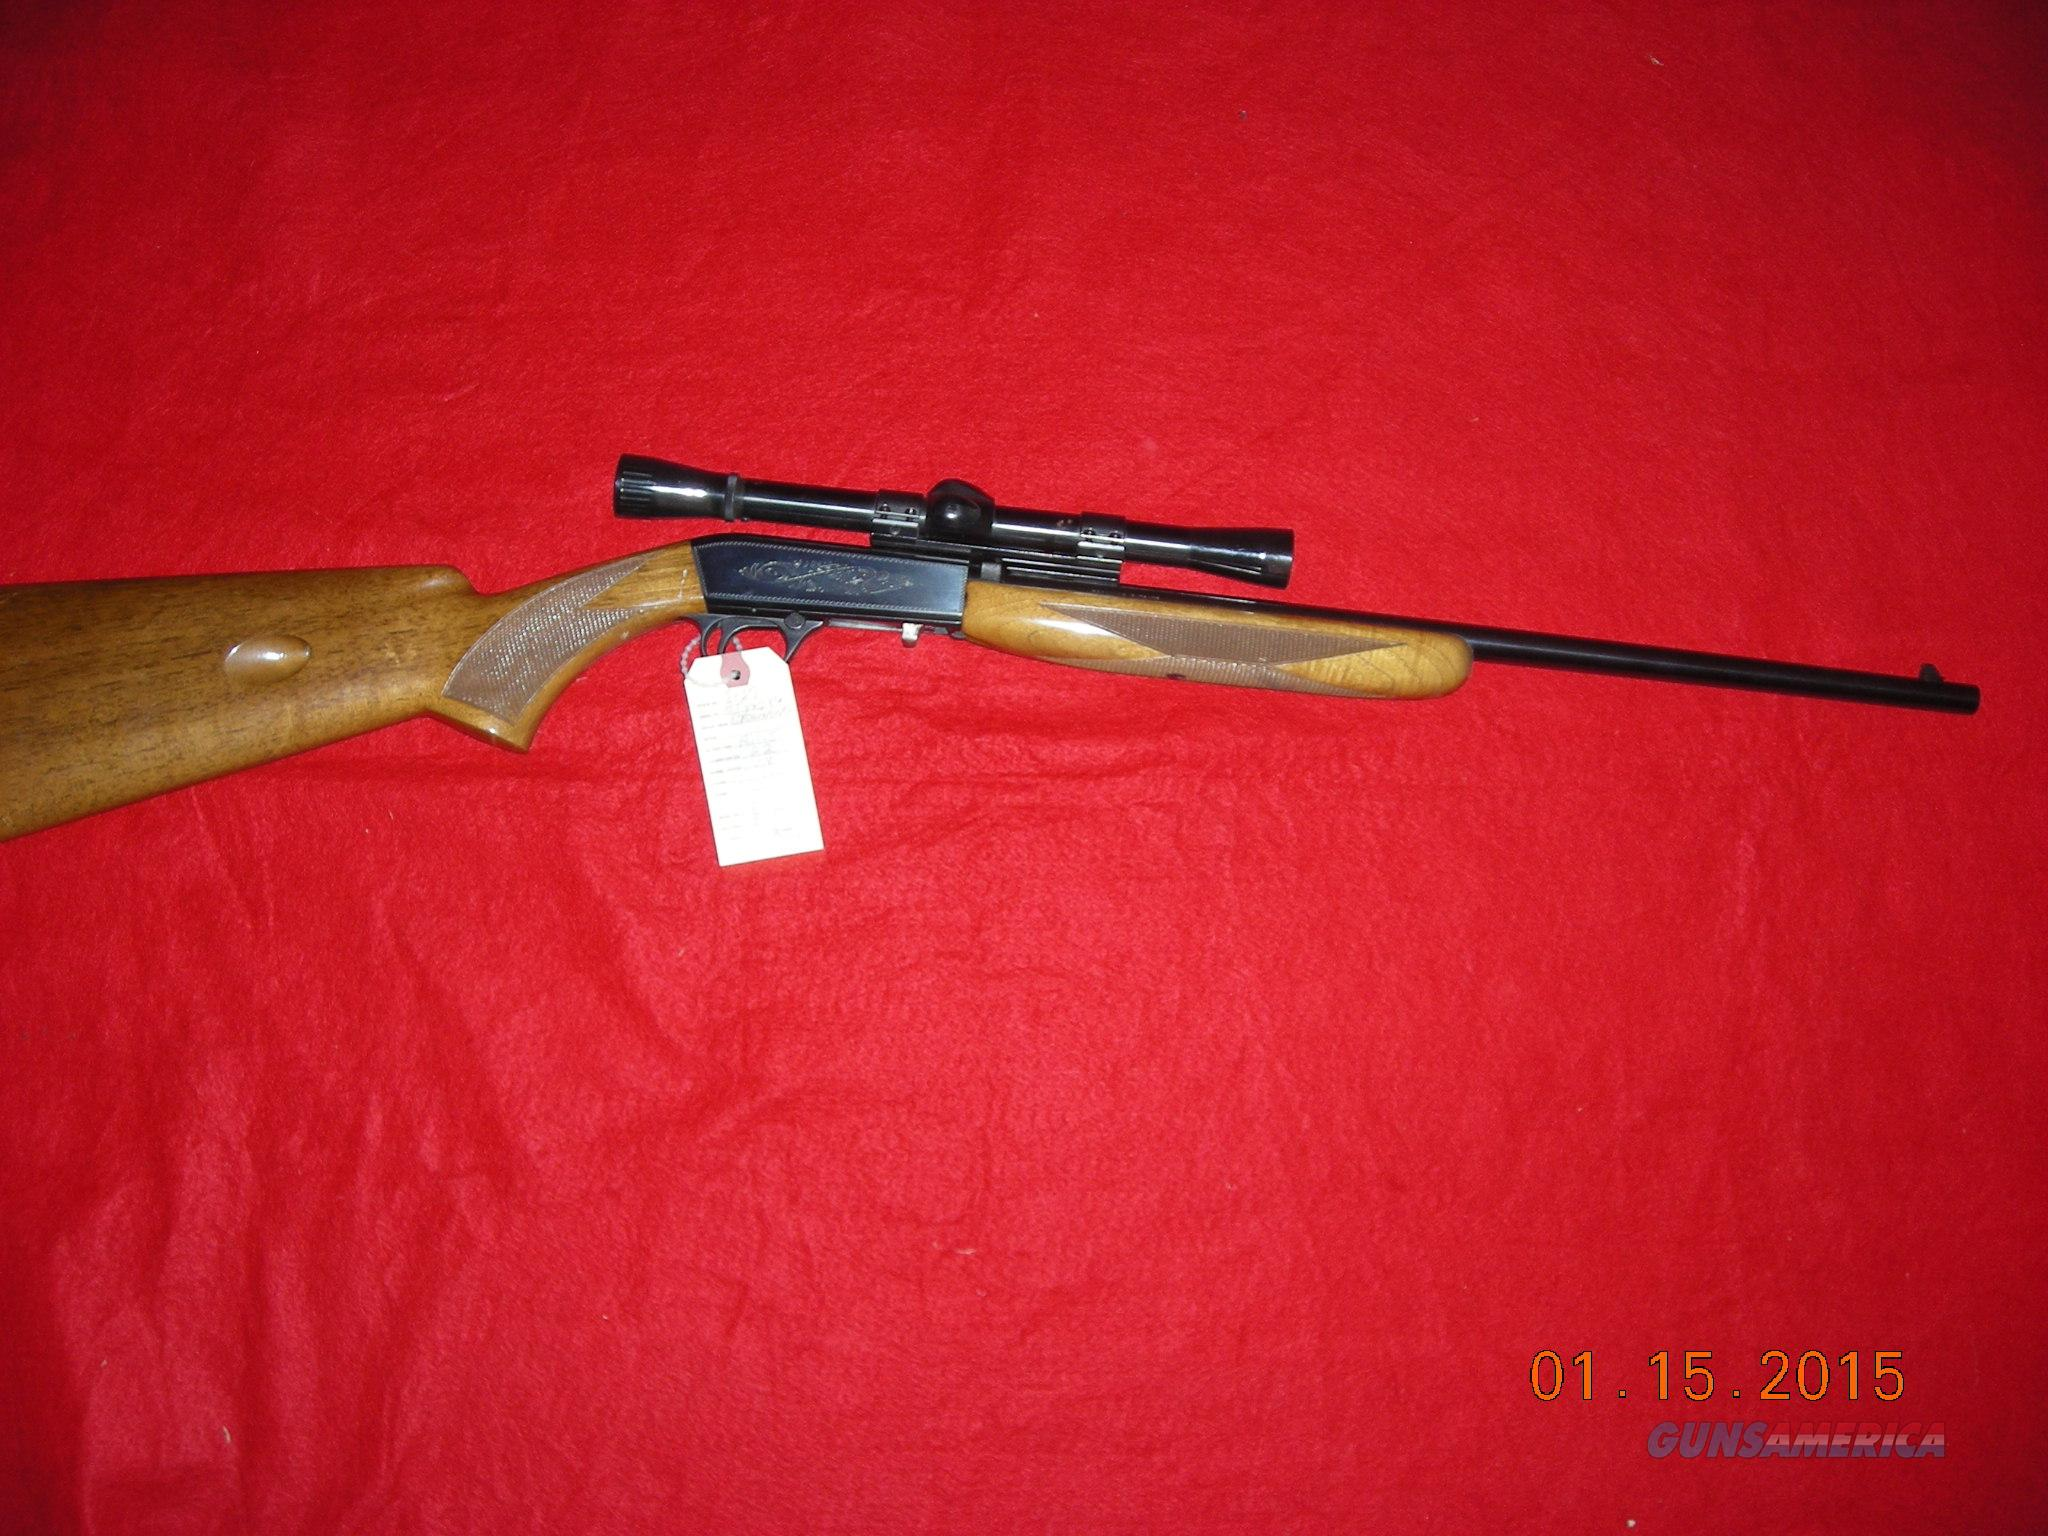 BROWNING 22LR SEMI   Guns > Rifles > Browning Rifles > Semi Auto > Hunting